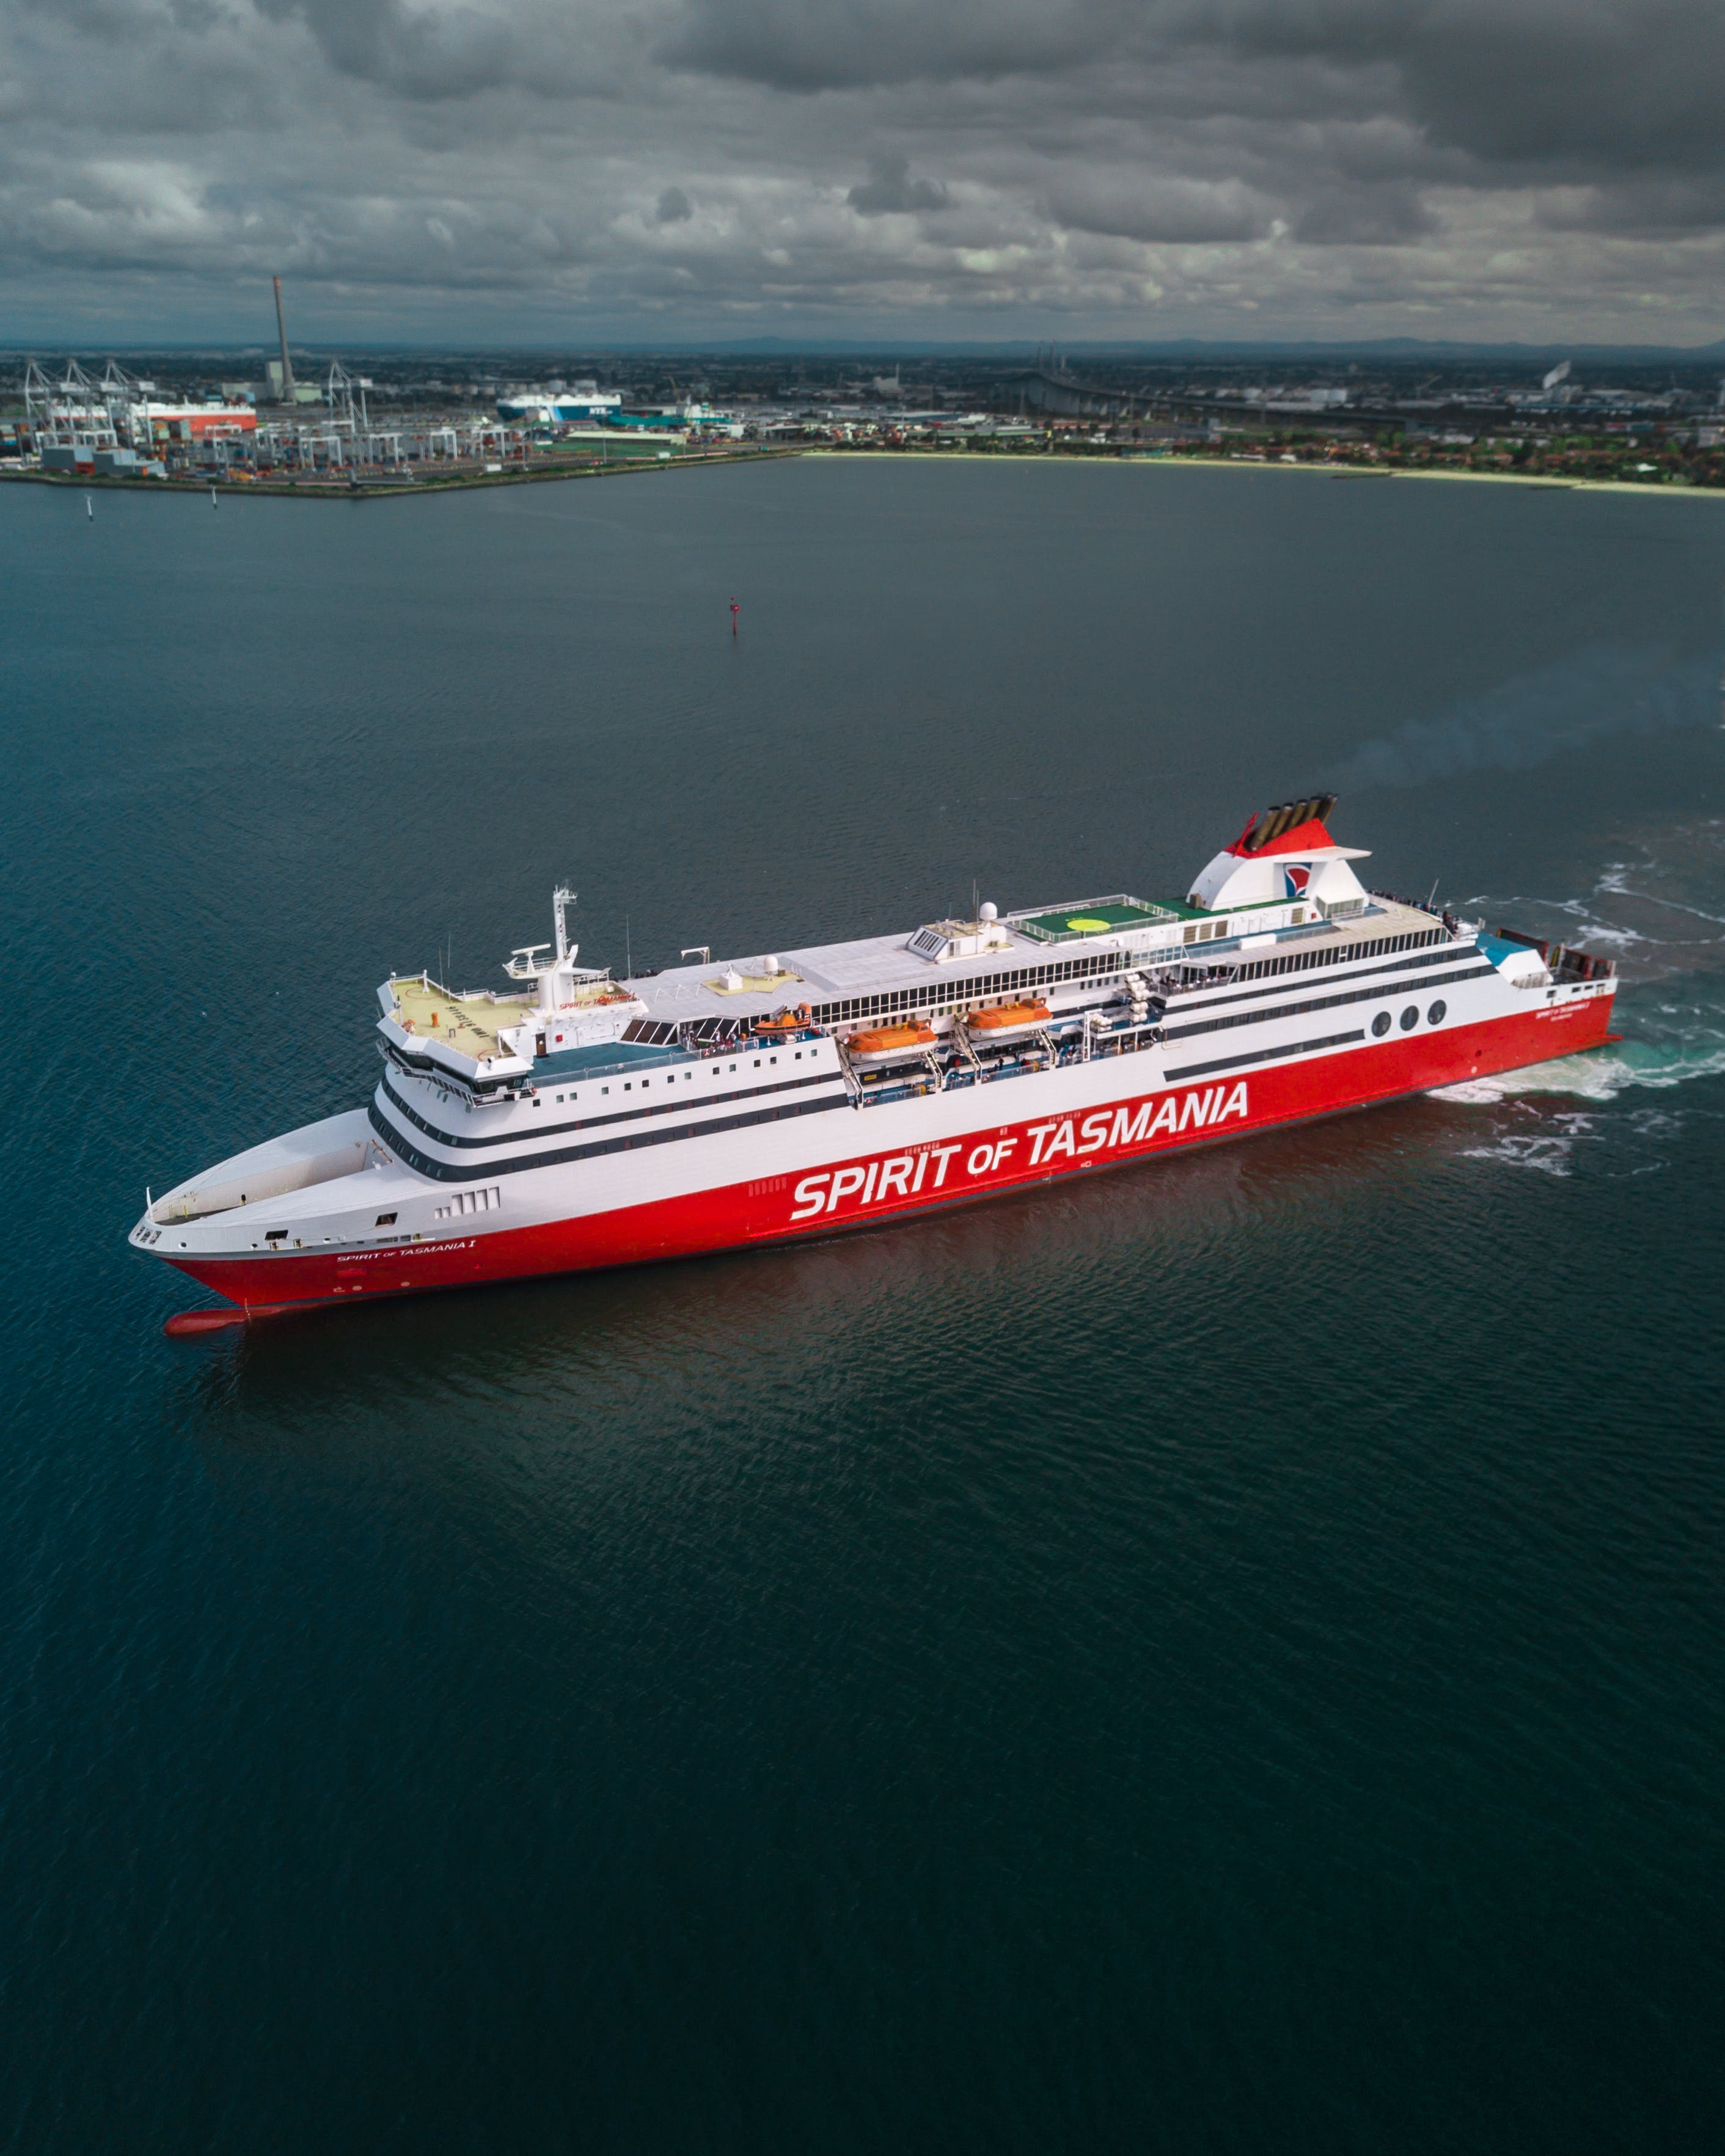 White and Red Spirit of Tasmania Cruise Ship on Body of Water